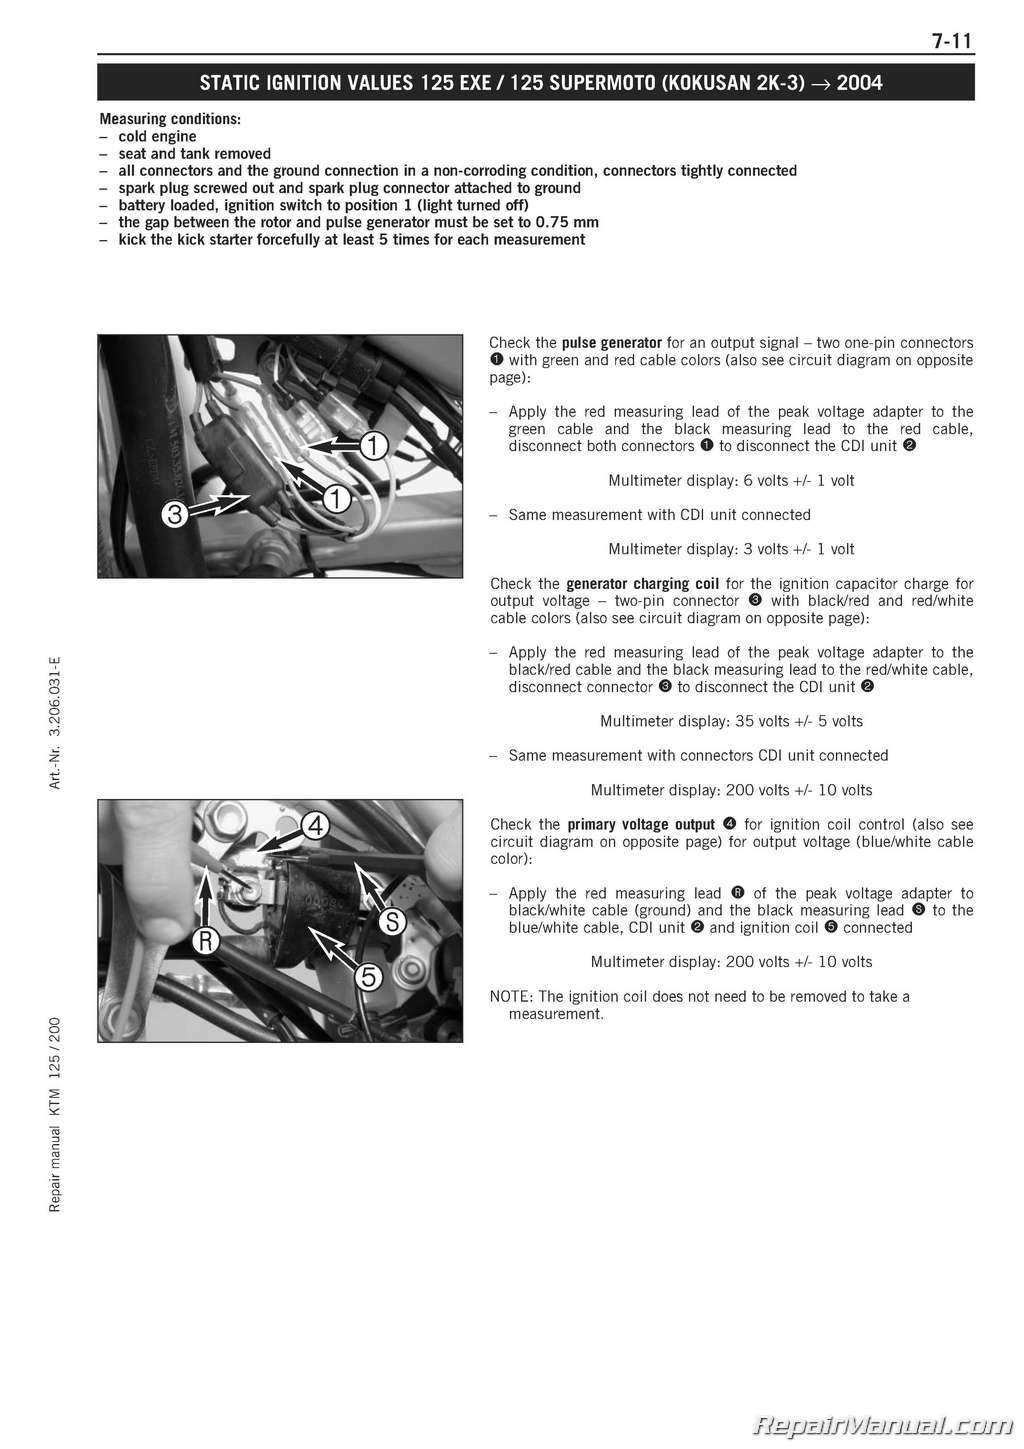 1995 Ktm Stator Wiring Diagram Opinions About Cdi Get Free Image Images Gallery